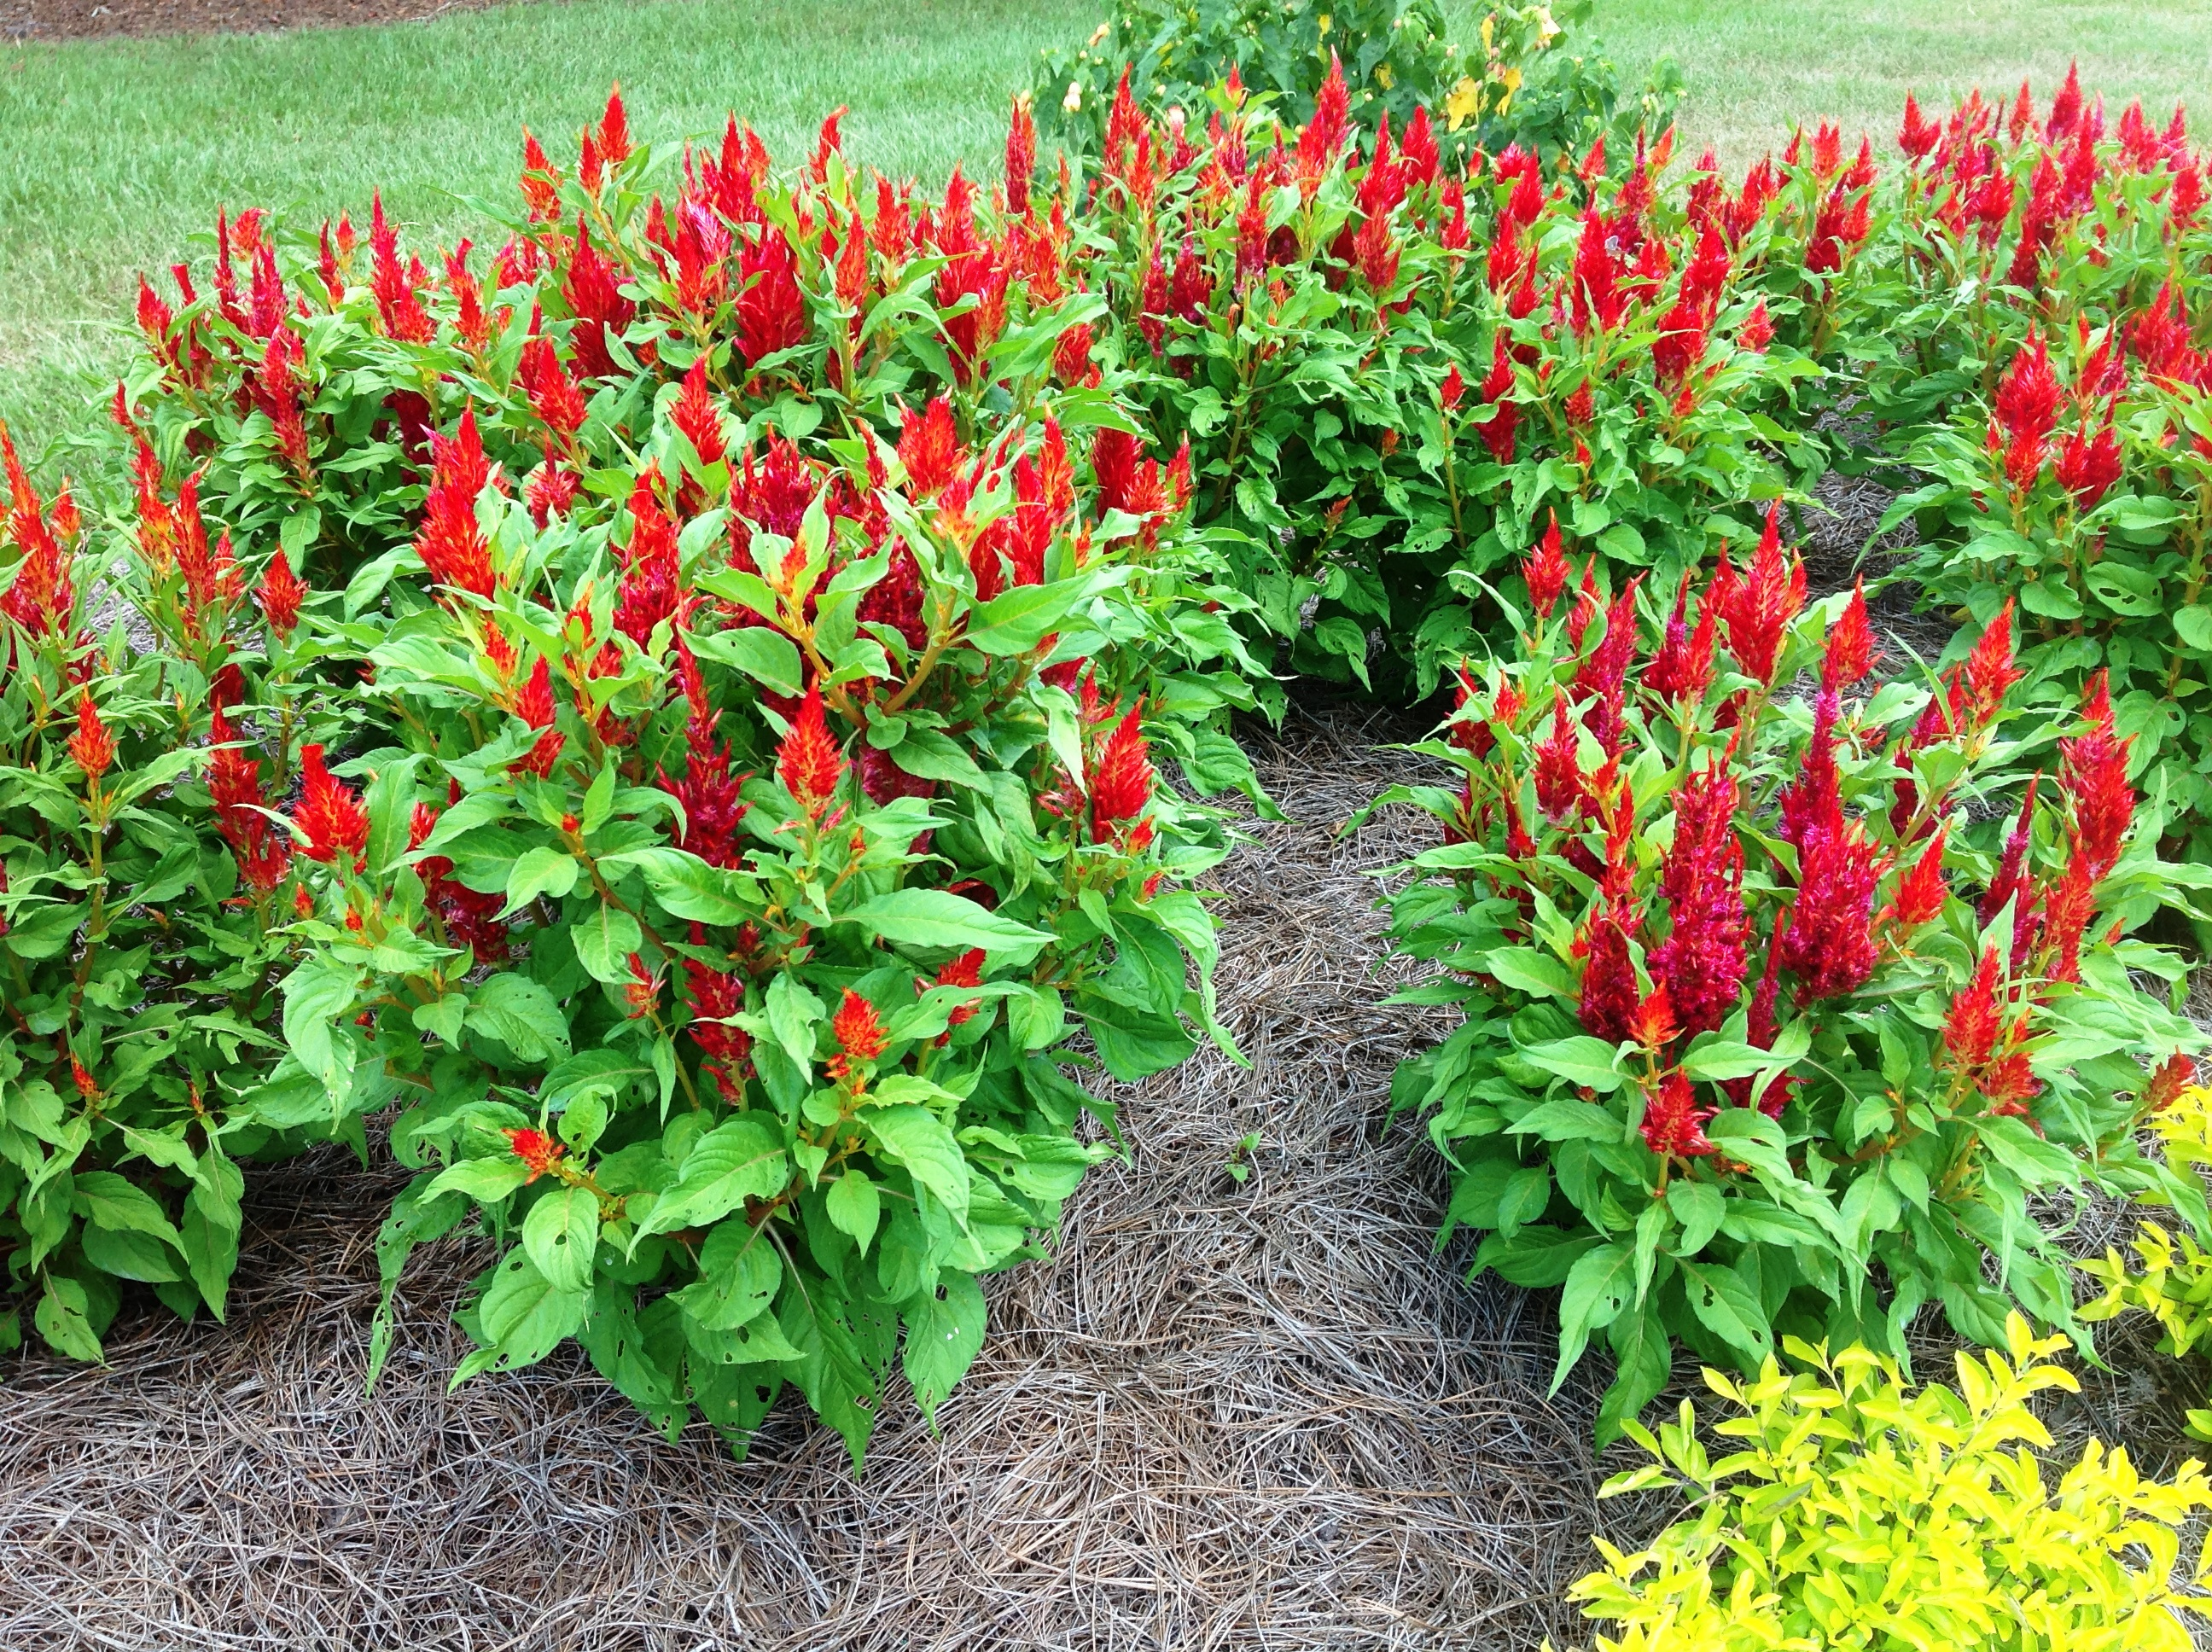 Celosia ornamental peppers dress up fall gardens LSU AgCenter